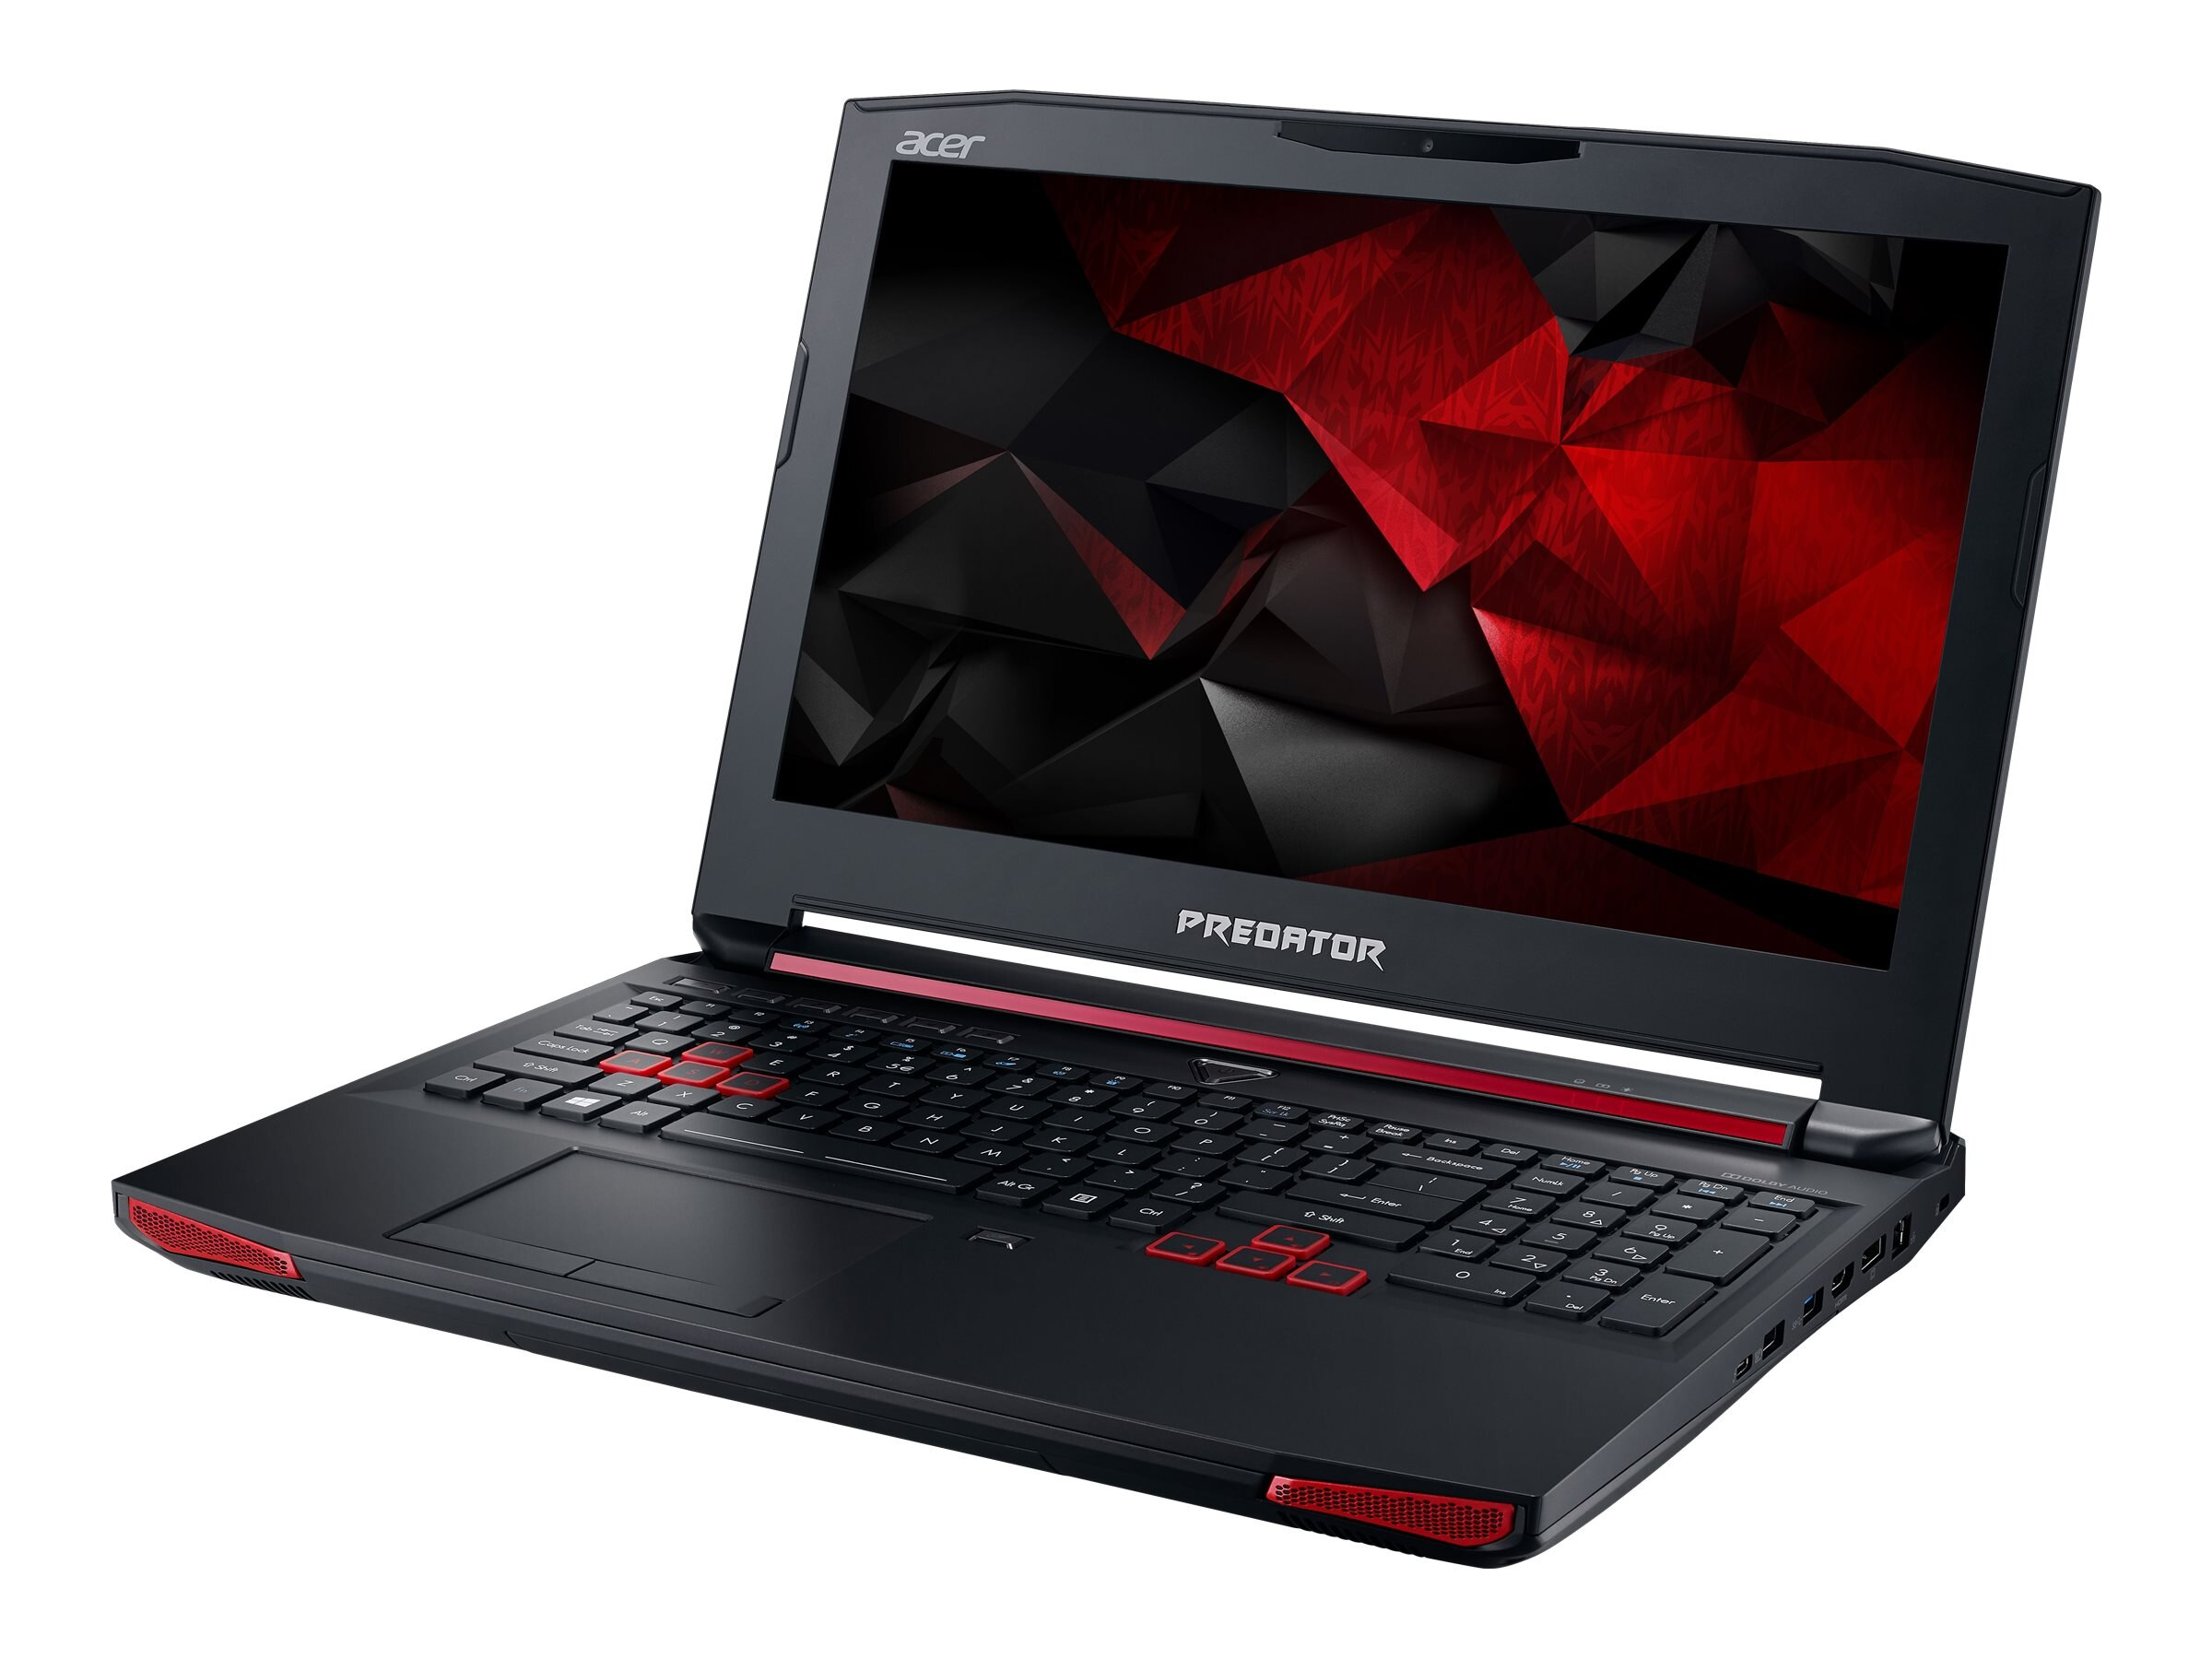 Acer Notebook PC Core Core i7-6700HQ 32GB 512GB PCIe 15.6, NX.Q05AA.001, 31905275, Notebooks